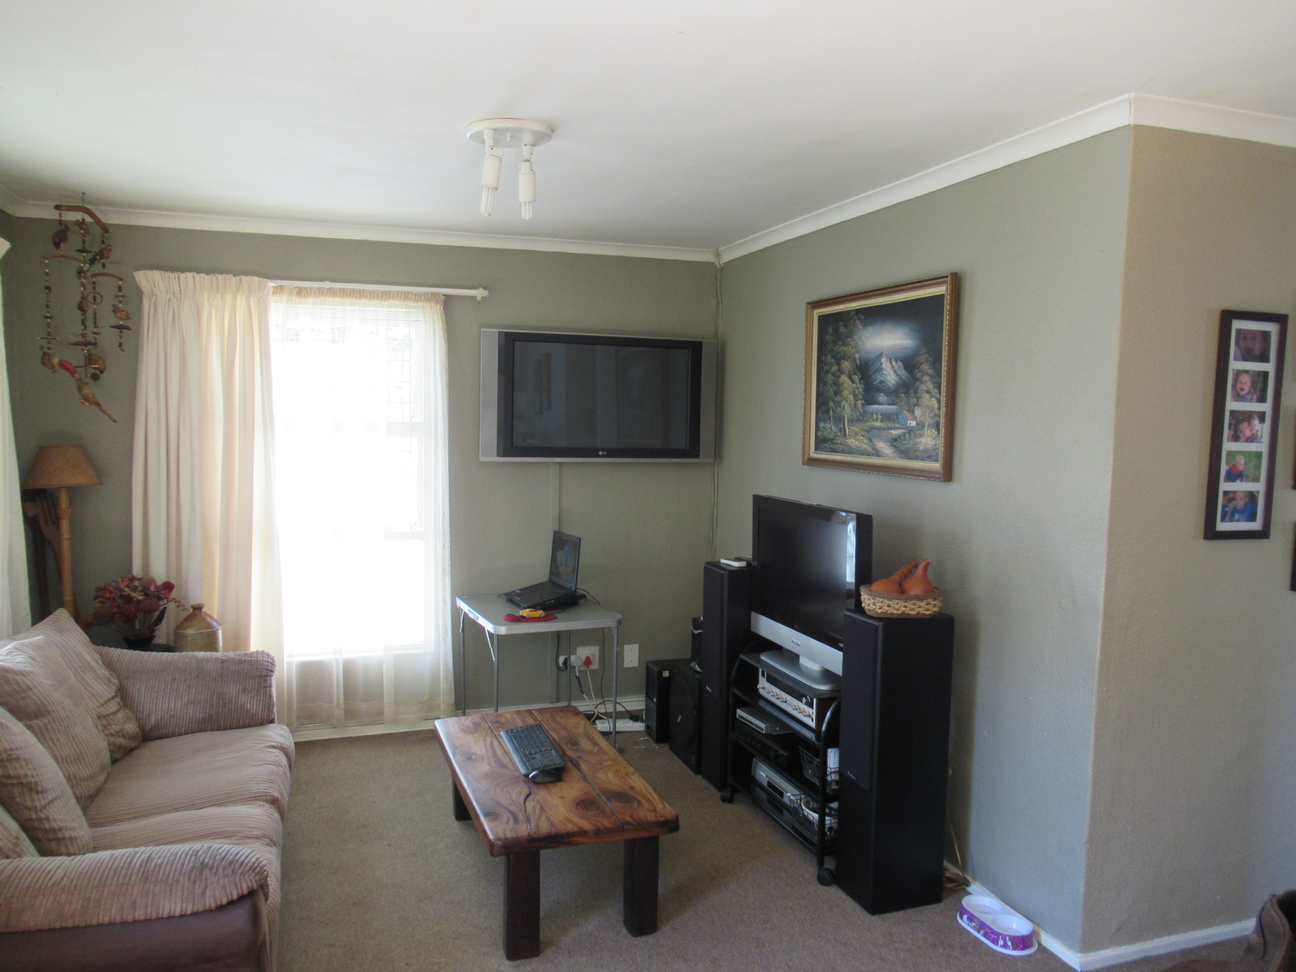 3 Bedroom House for sale in Strand South ENT0082002 : photo#0